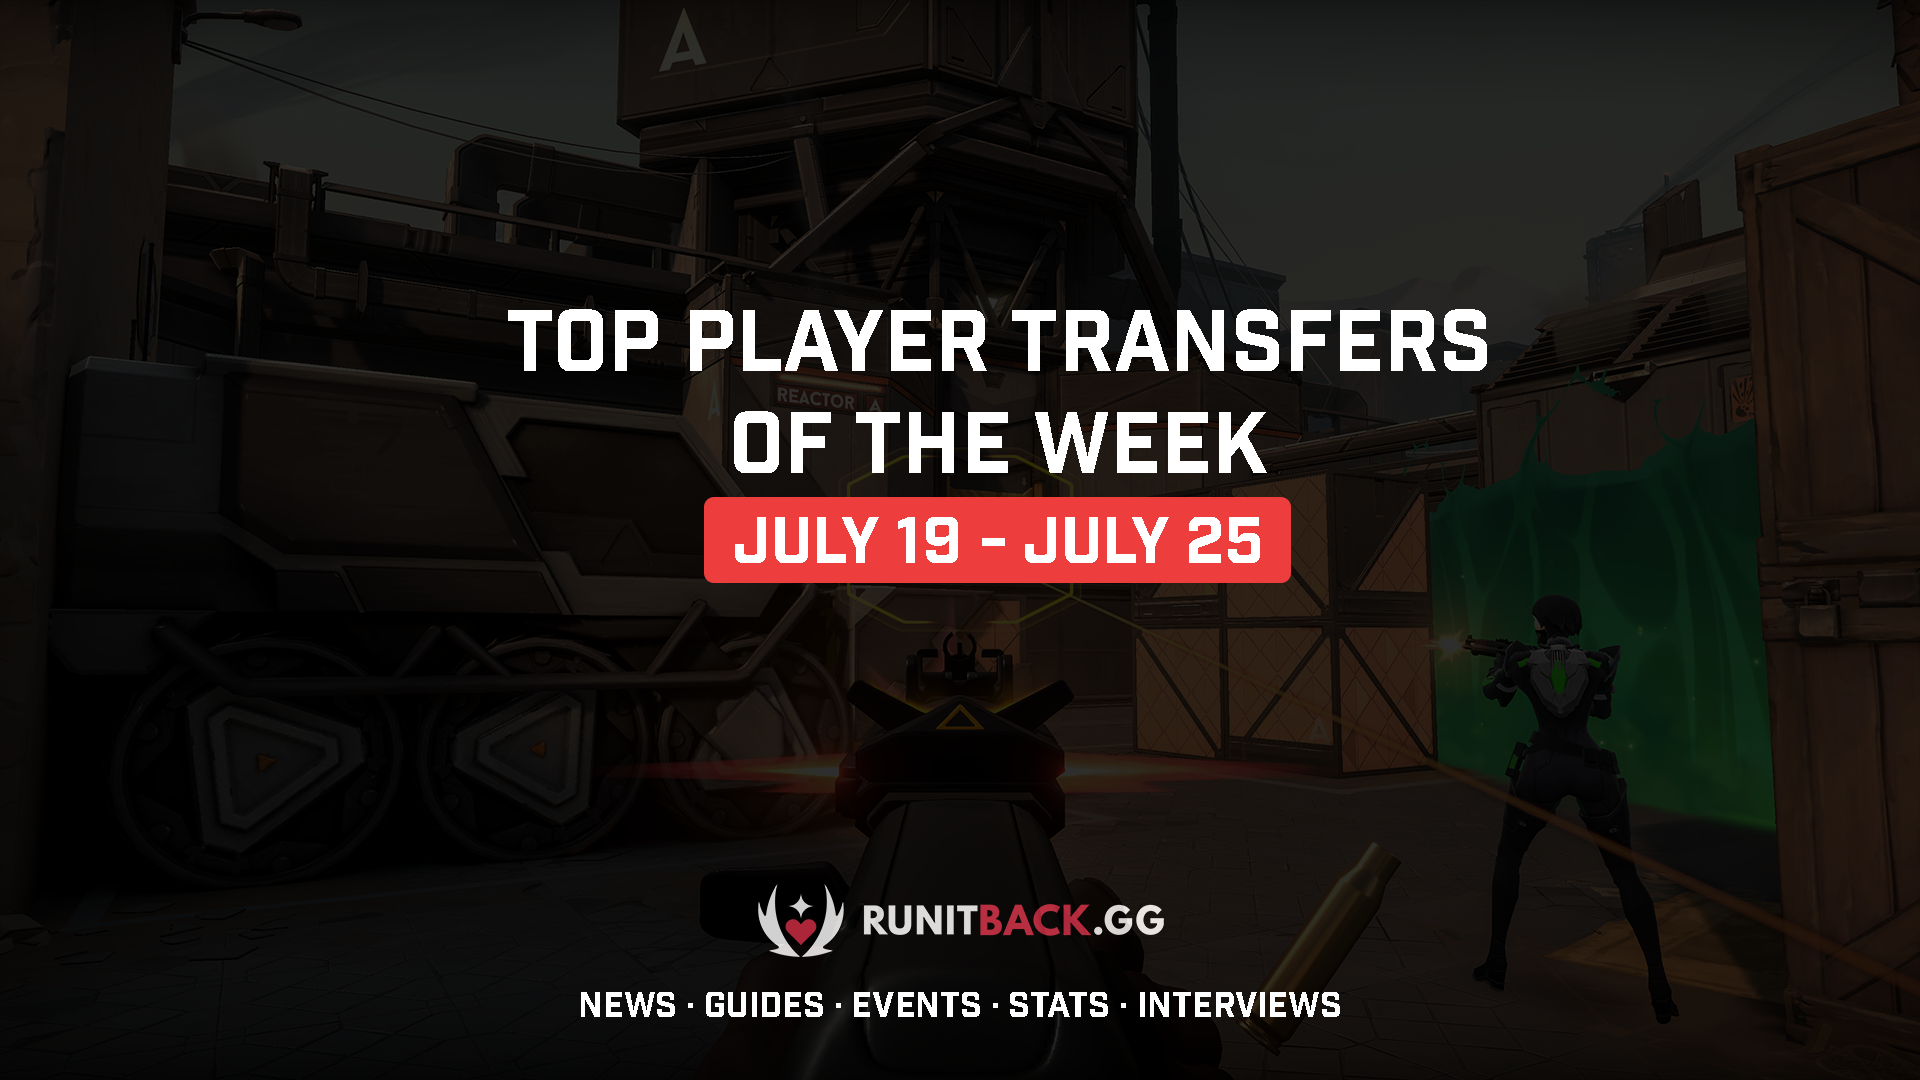 Top Player Transfers of the Week 7/19-7/25